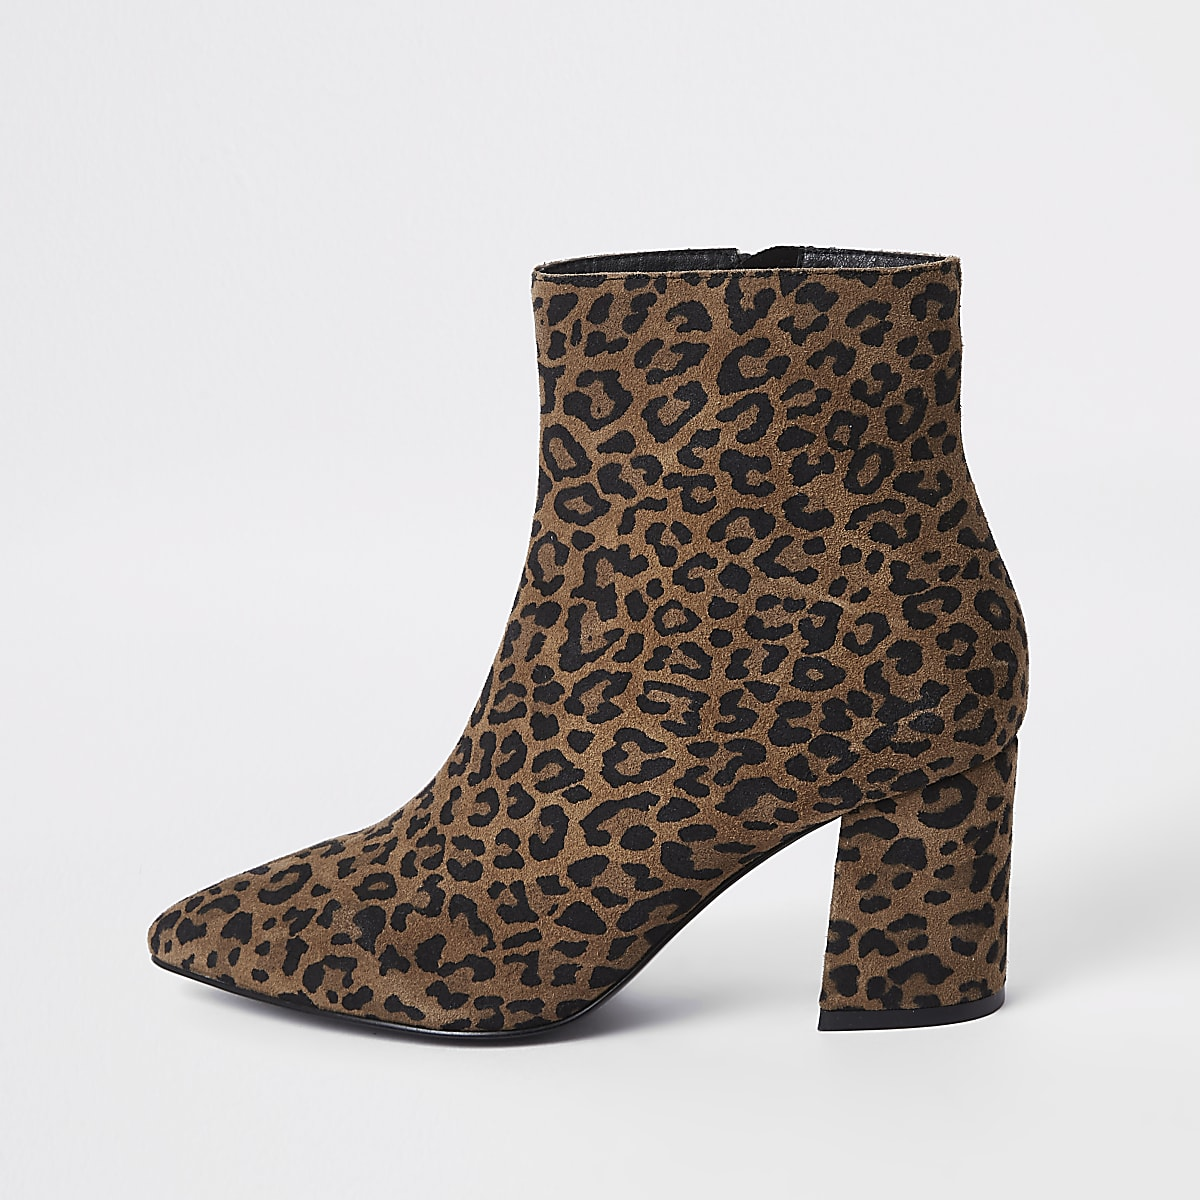 dd4d5c42ad29 Brown wide fit leopard print ankle boots - Boots - Shoes   Boots - women